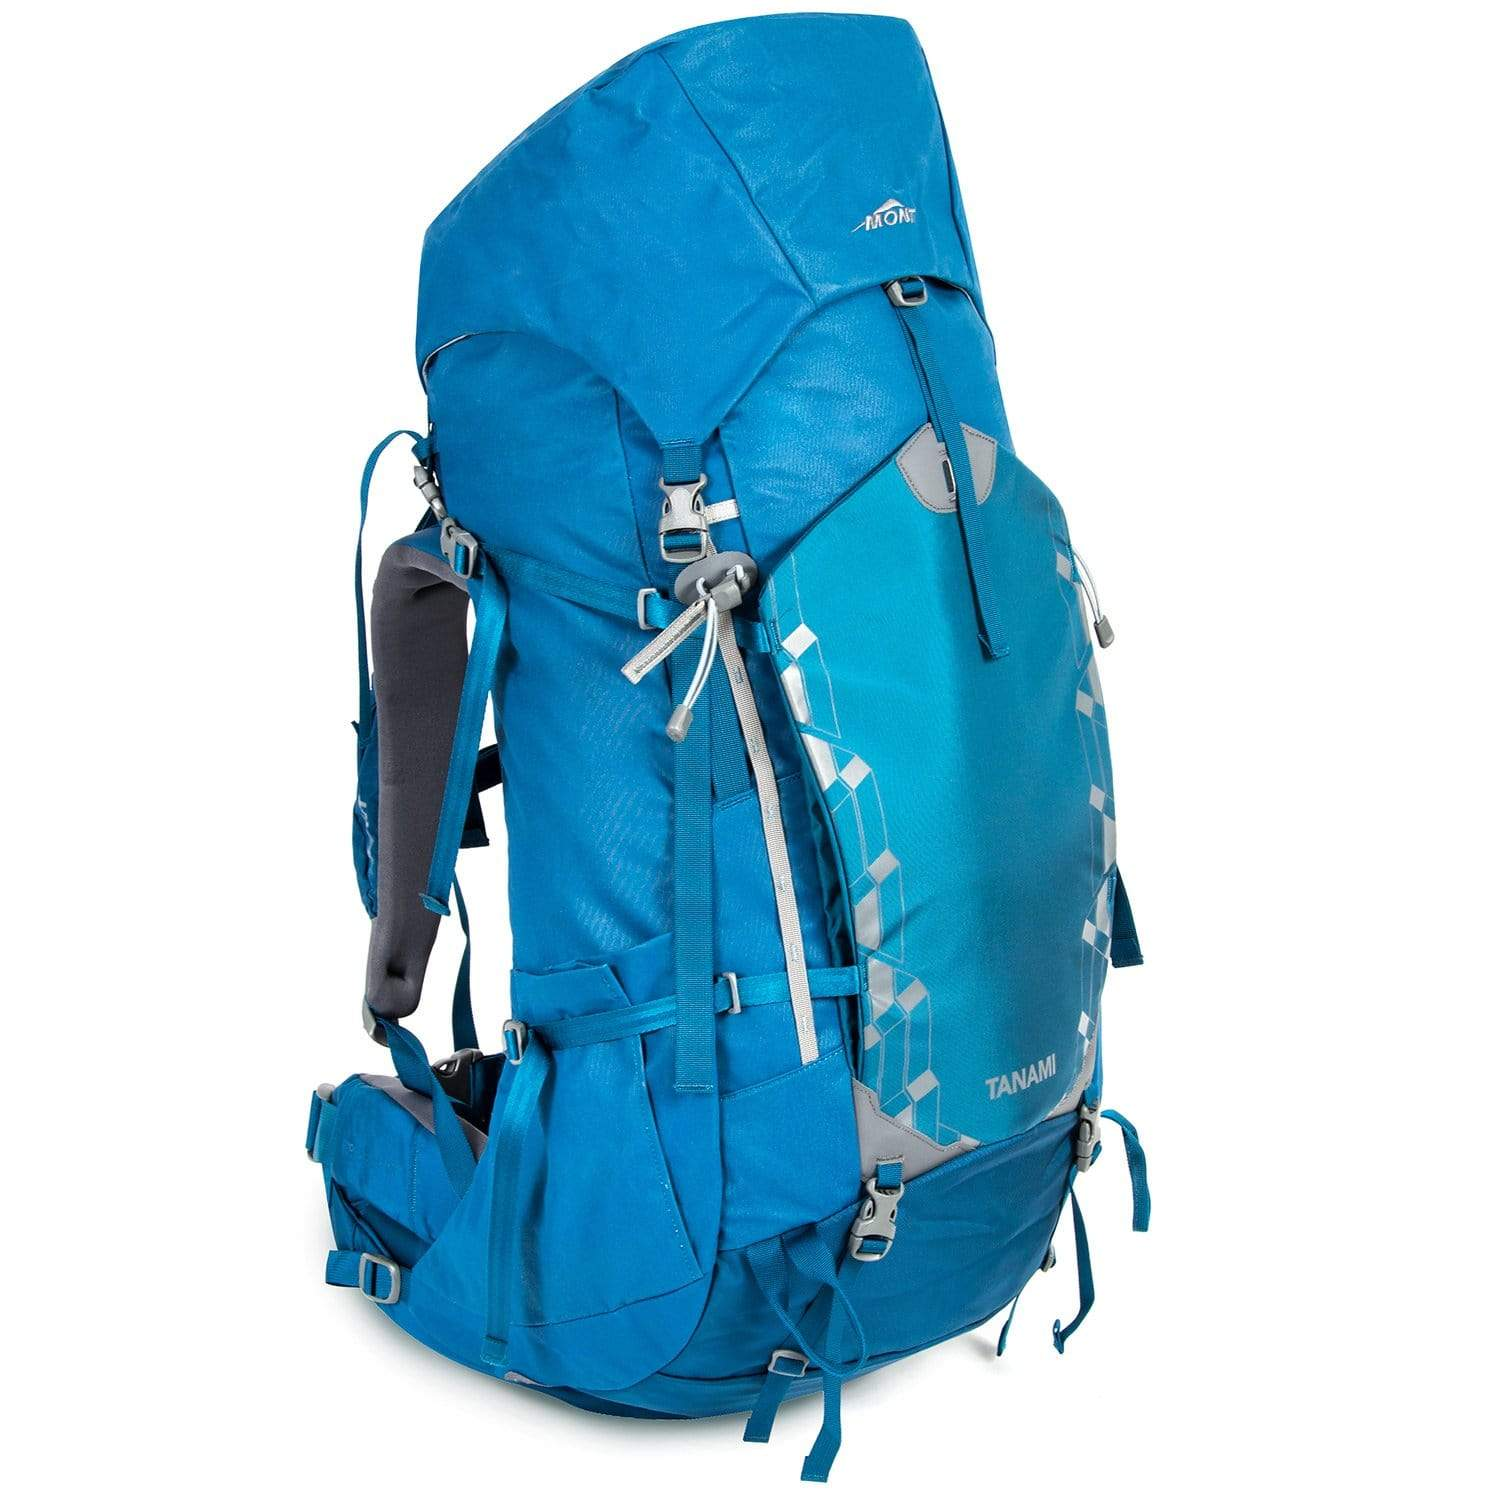 Mont Packs & Bags Tanami 60L Canvas Backpack LG / Ocean Blue 65.39.41